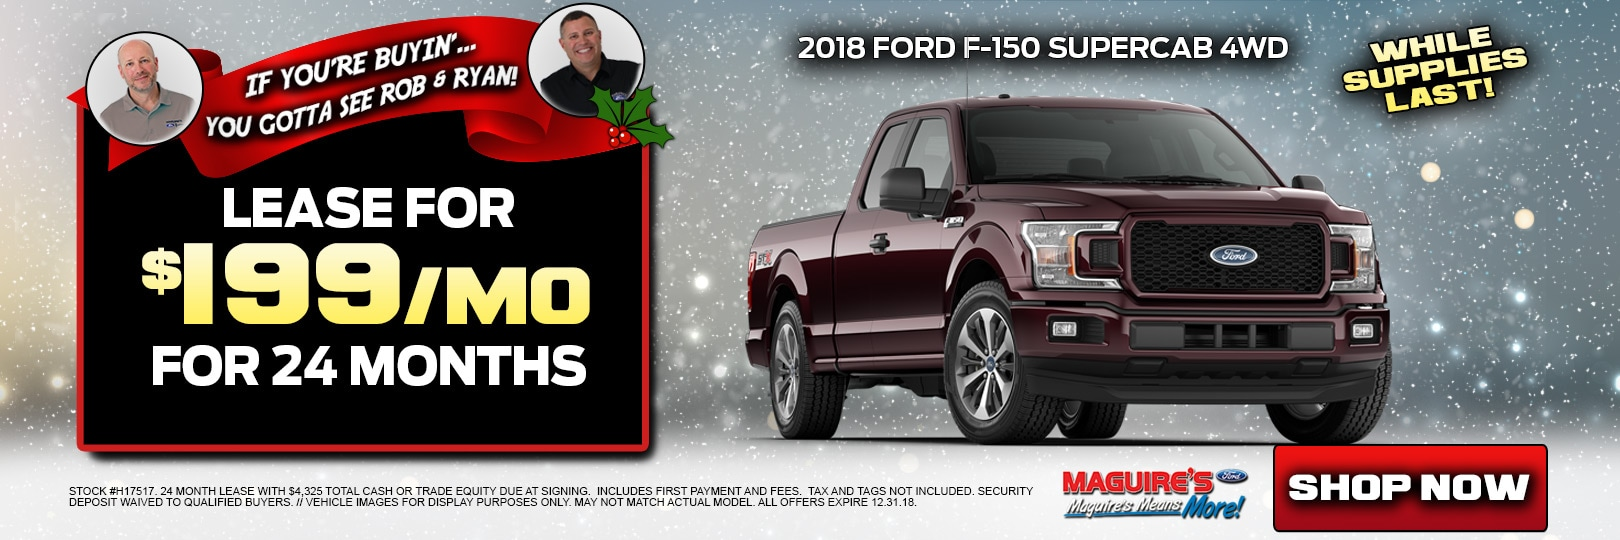 Shop For F-150 in Hershey PA